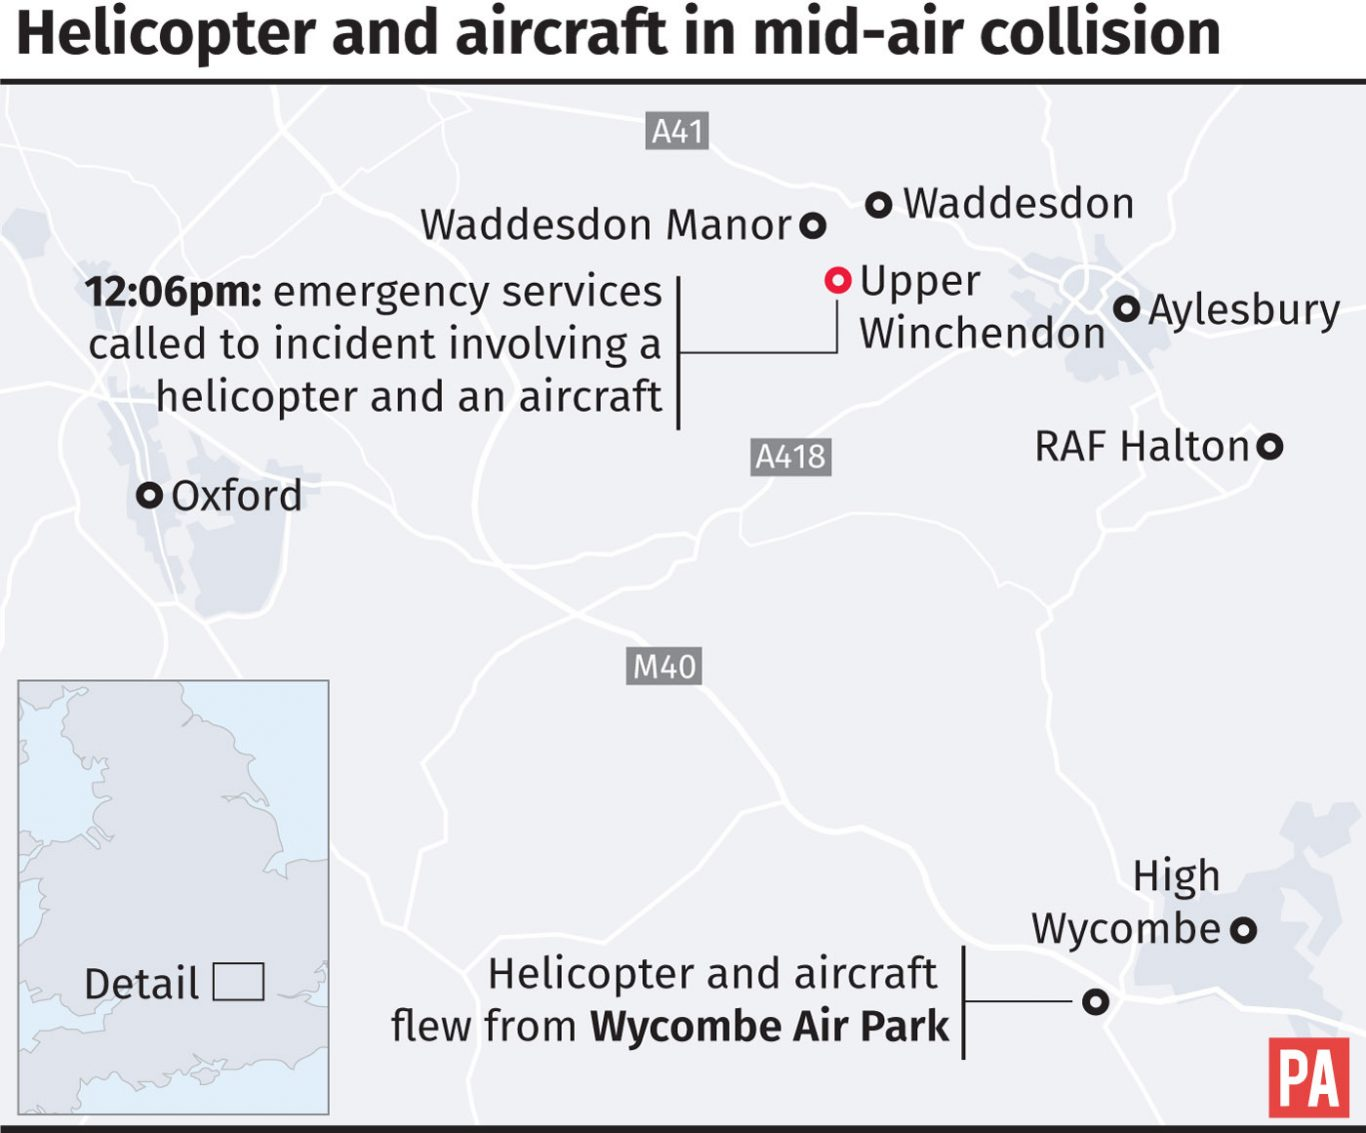 A41 closed: Waddesdon Manor plane crash causes traffic chaos near Aylesbury